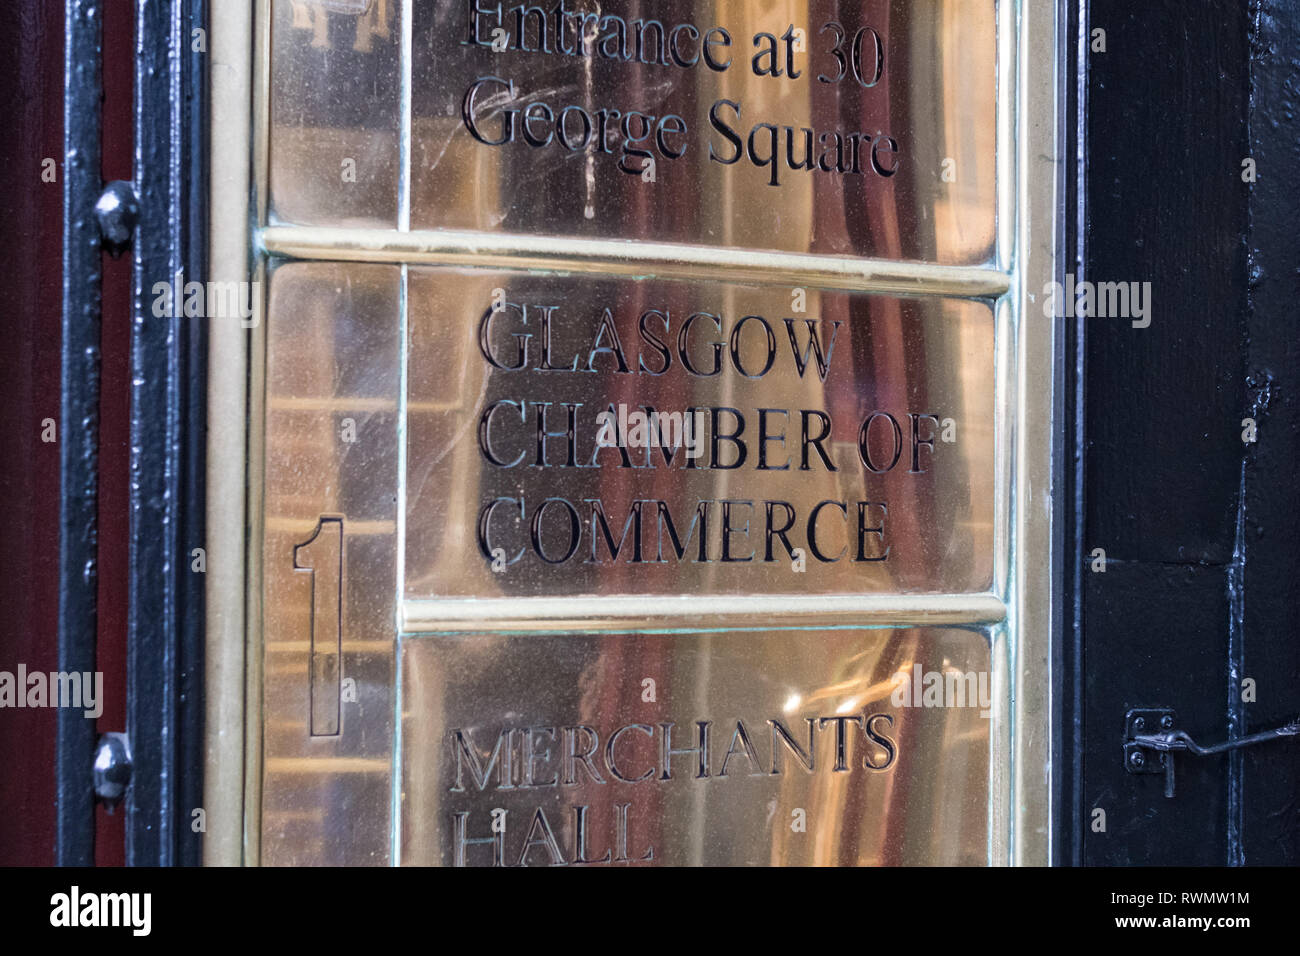 plaque at the Glasgow Chamber of Commerce, George Square, (West George Street entrance sign), Glasgow, Scotland, UK - Stock Image